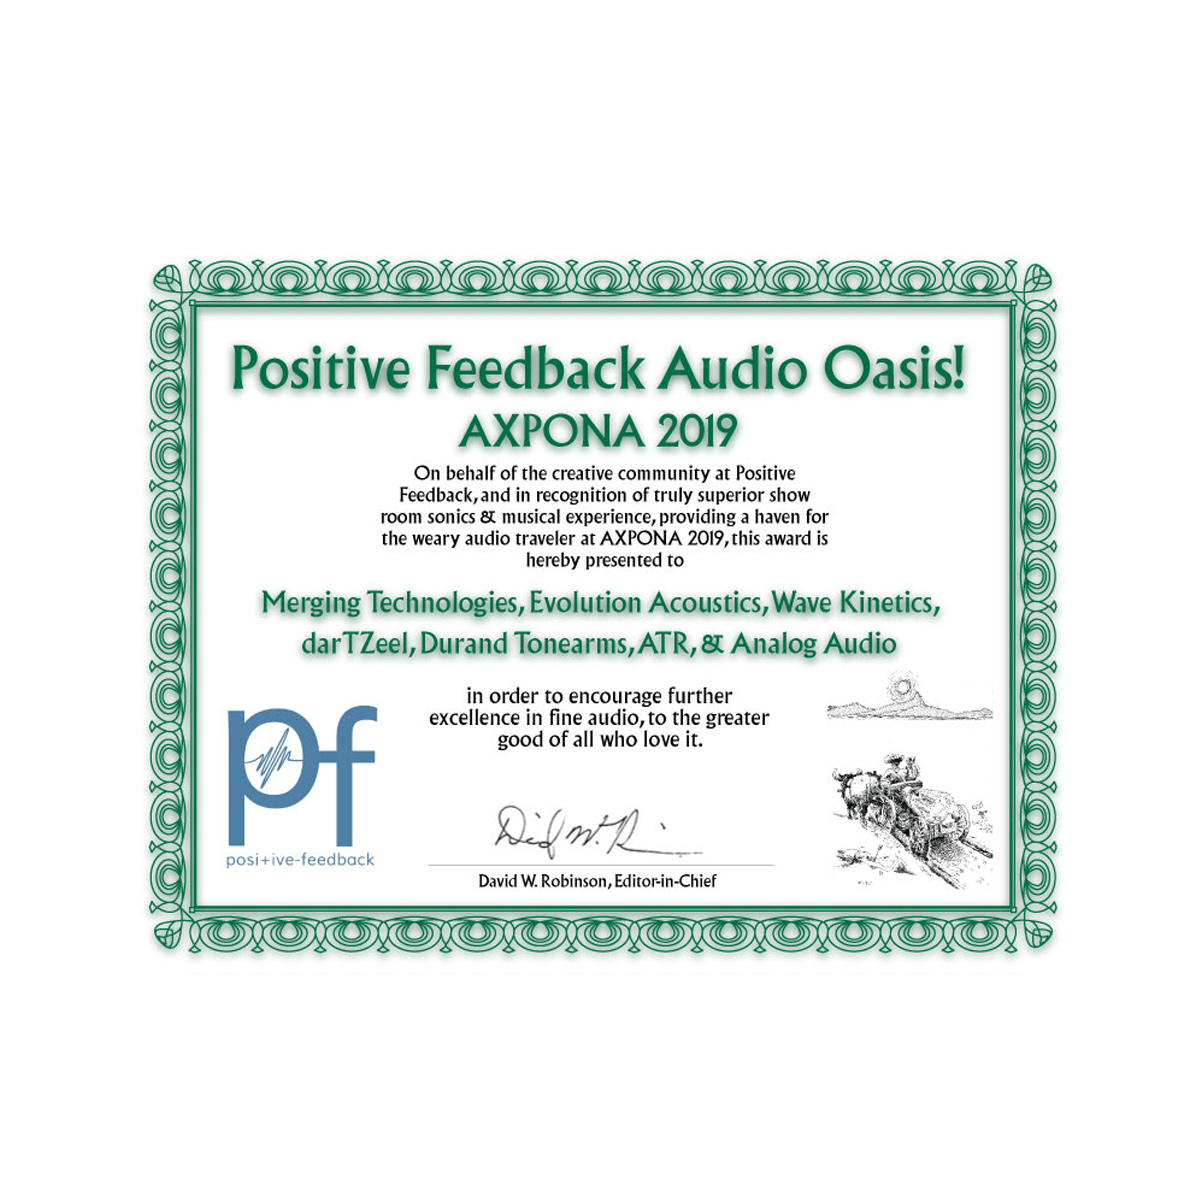 Positive Feedback Audio Oasis - AXPONA 2019